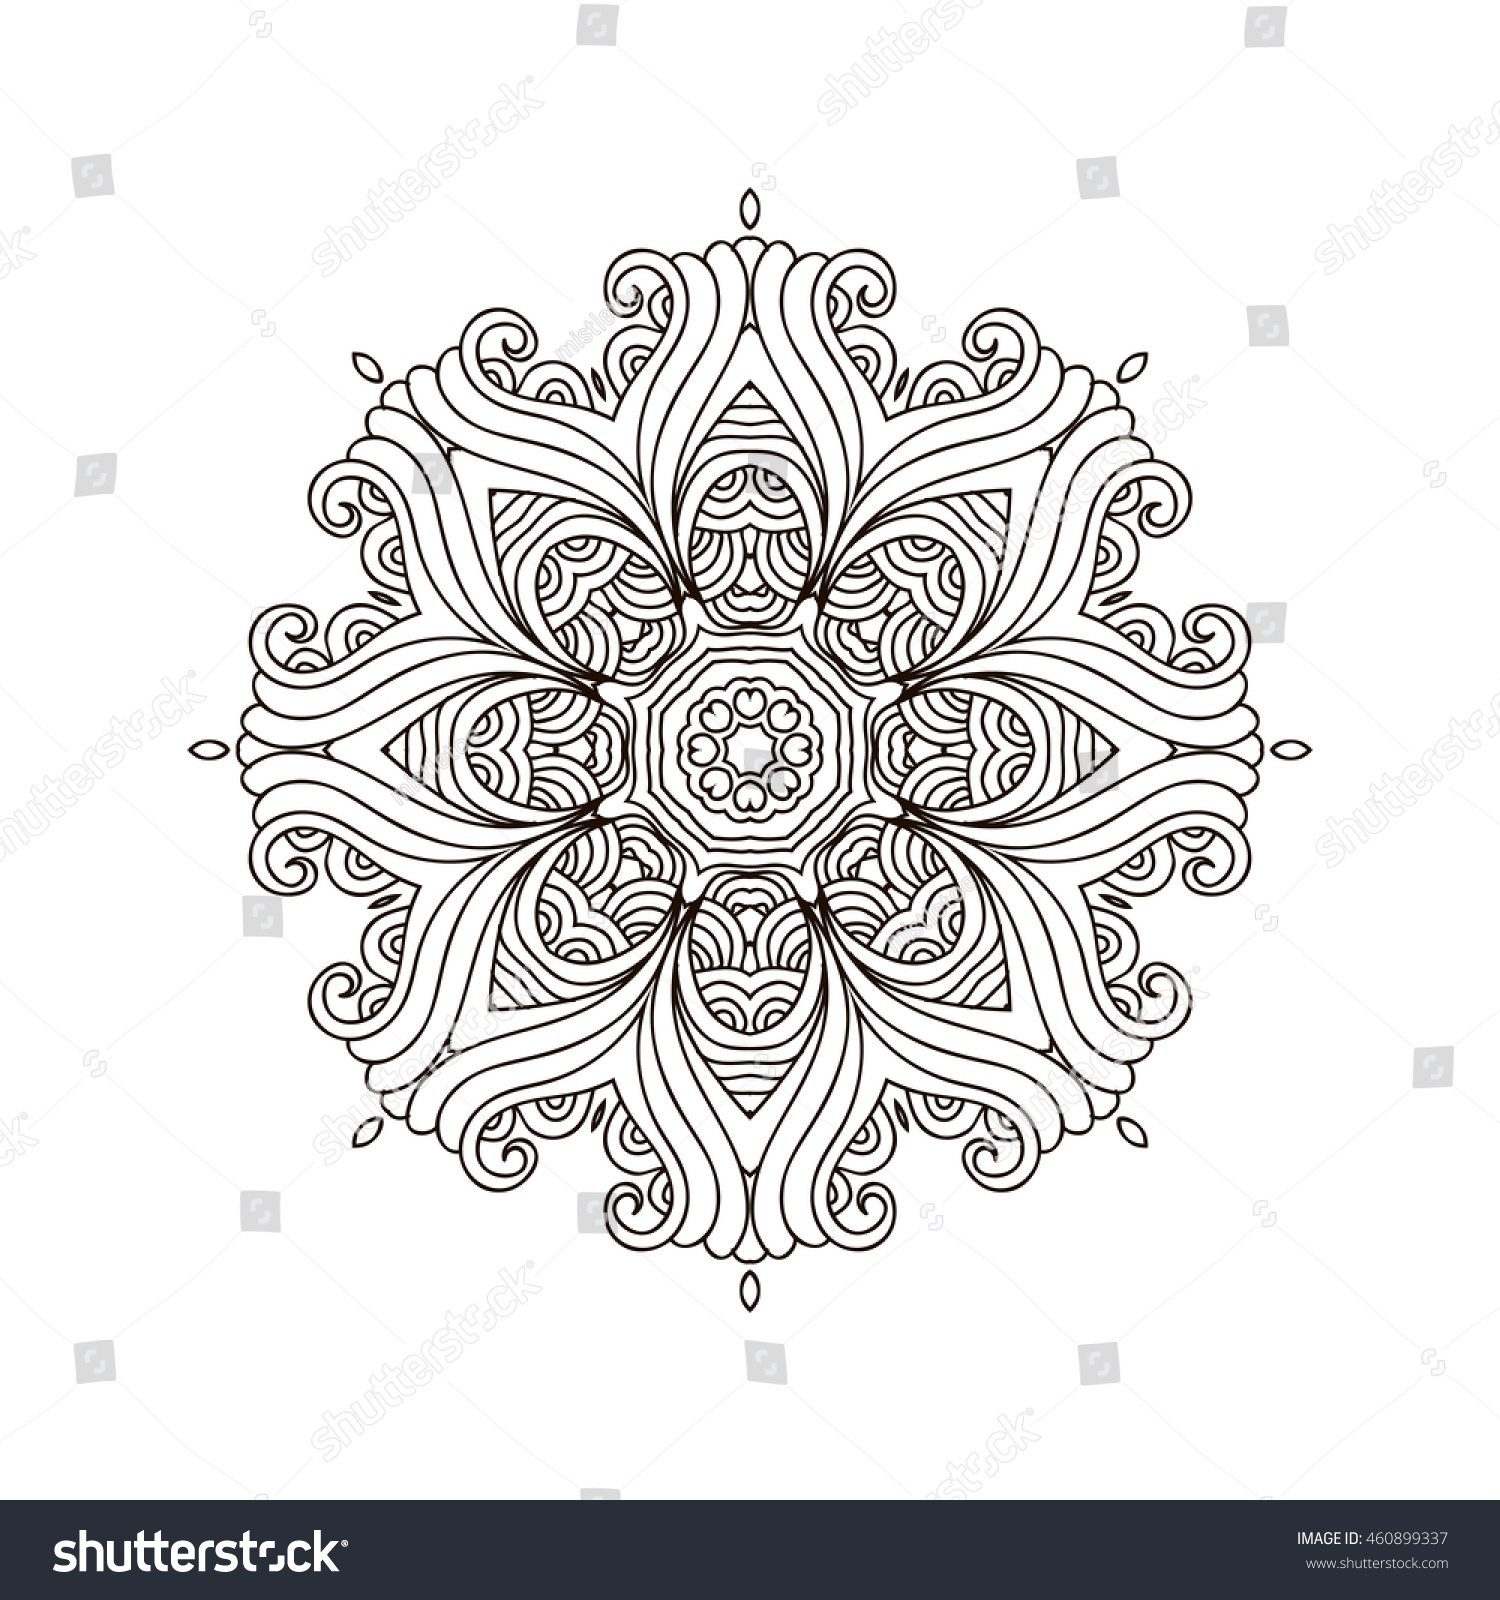 Mandala Coloring Bookoutline Mandalas Inspired Arabian And Indian Tibetan OrnamentAdult